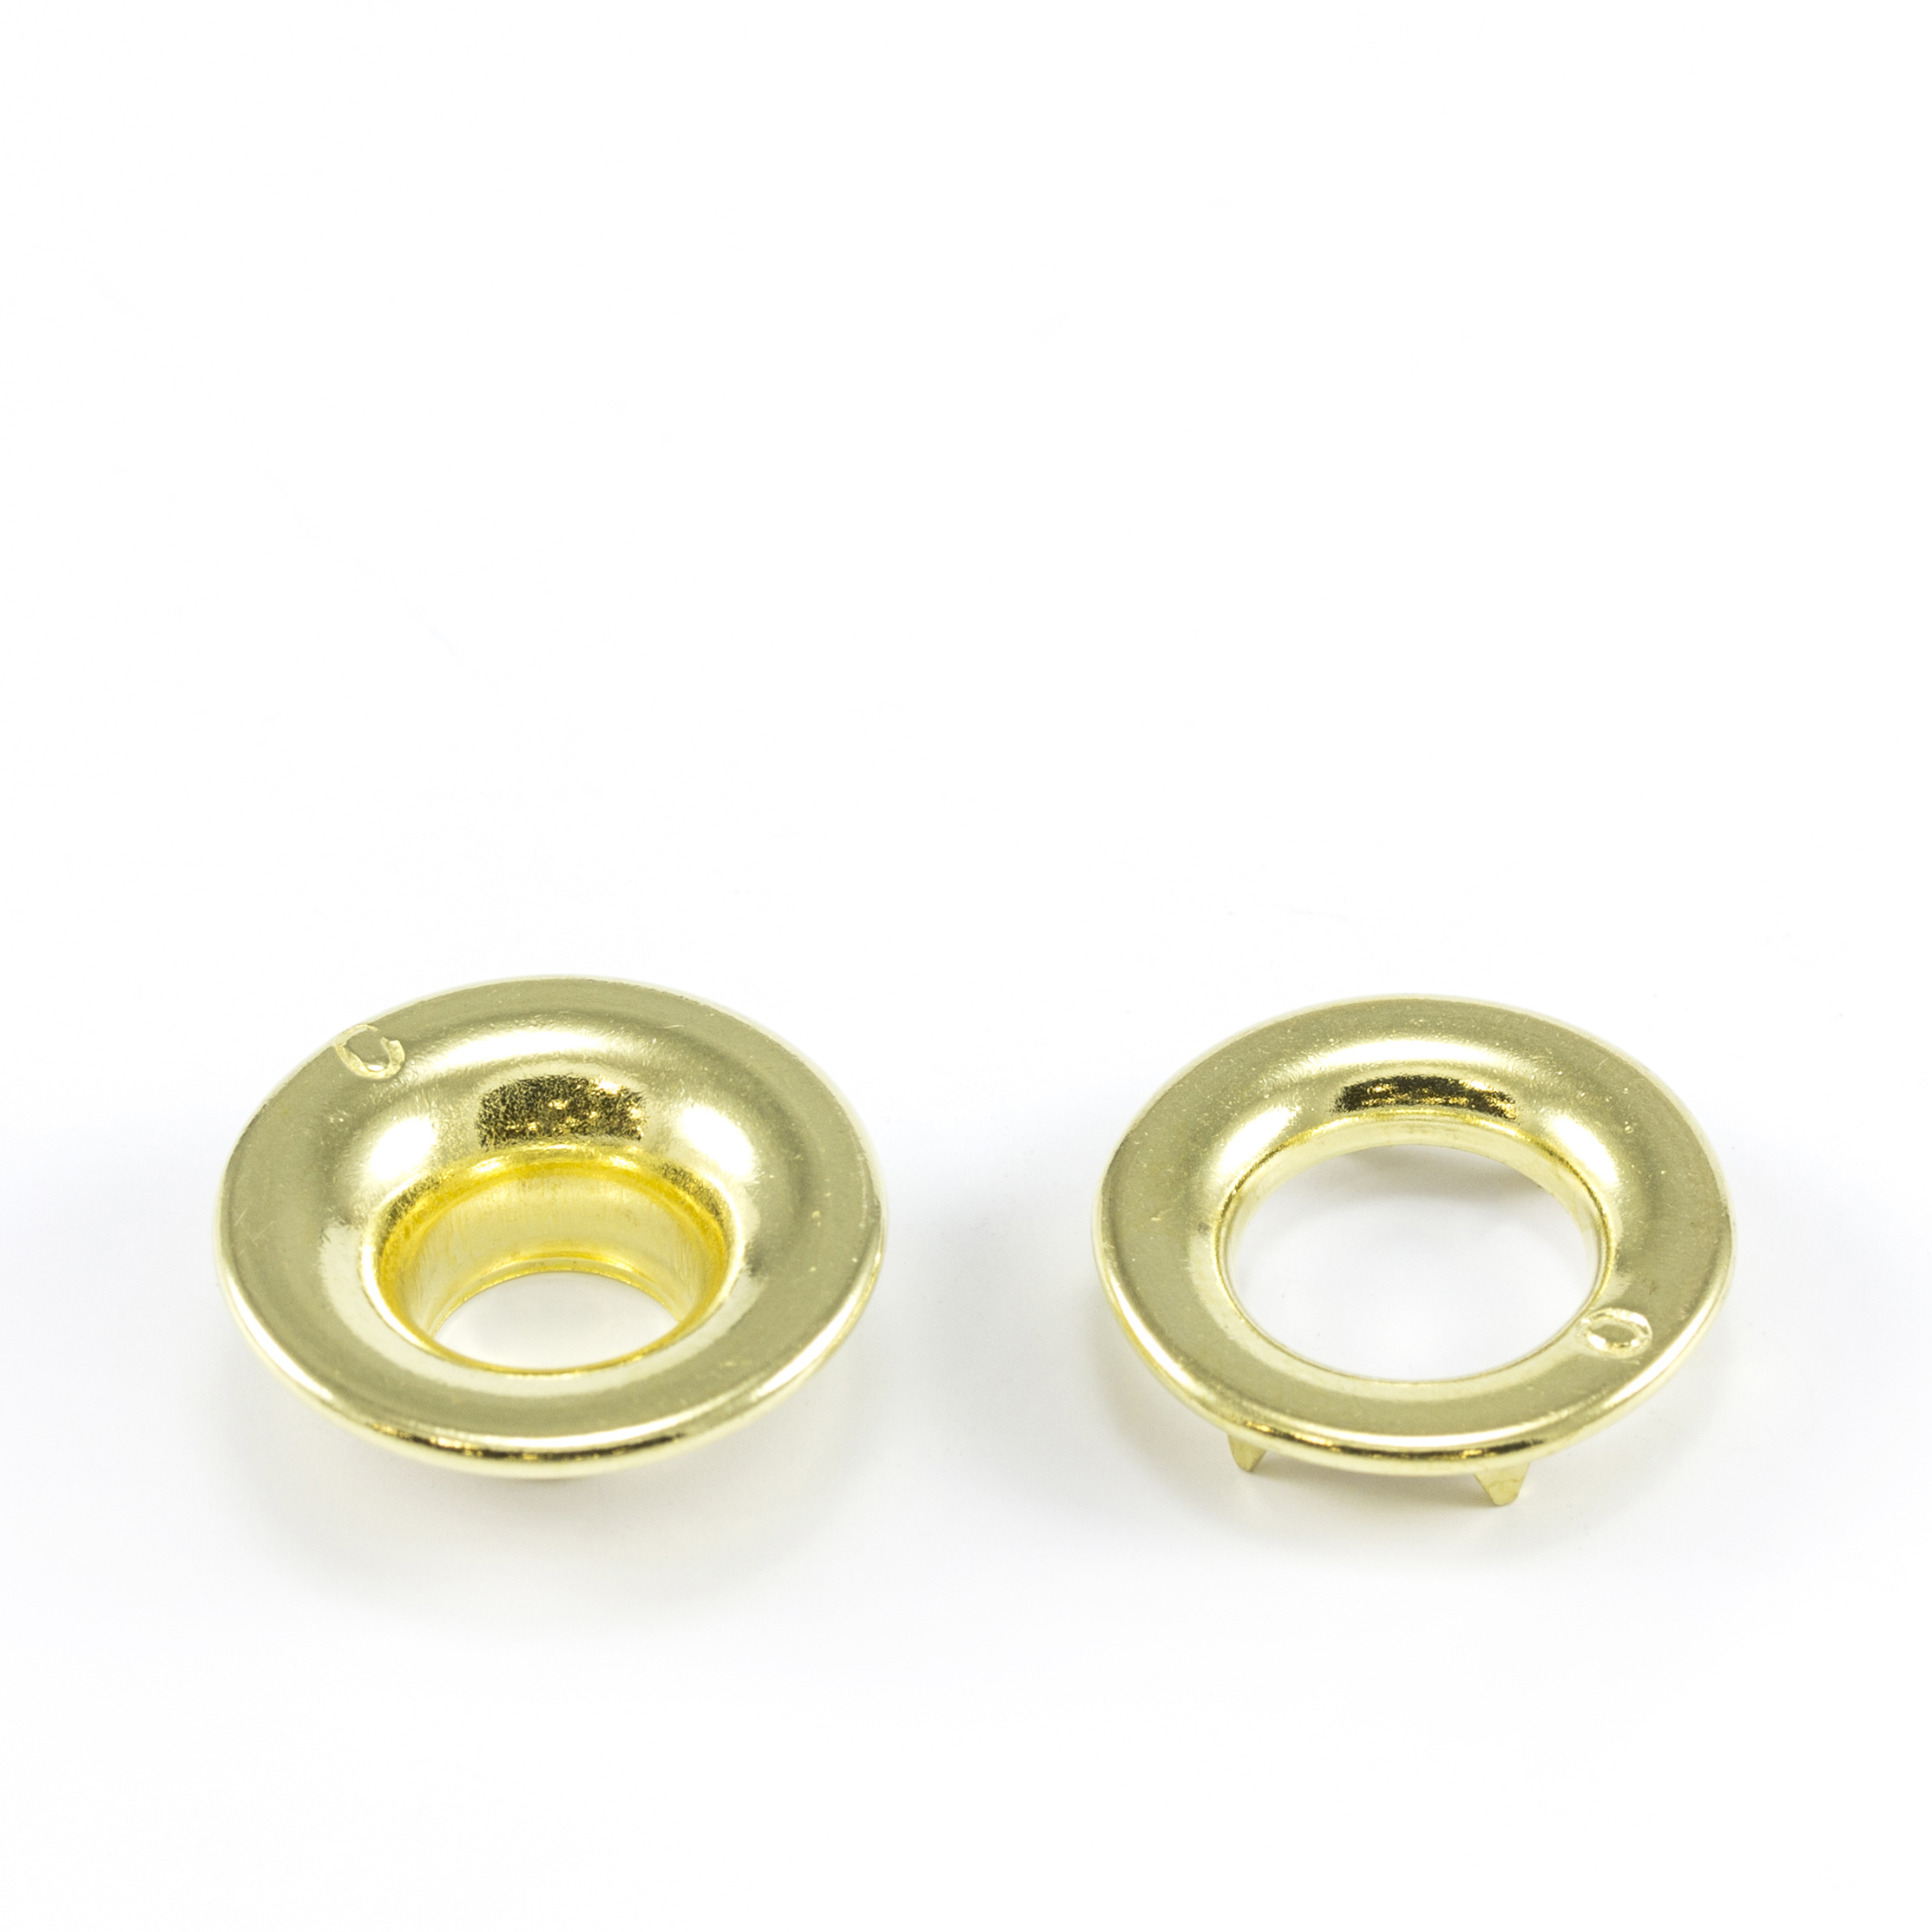 Thumbnail Rolled Rim Grommet with Spur Washer #0 Brass 9/32 1